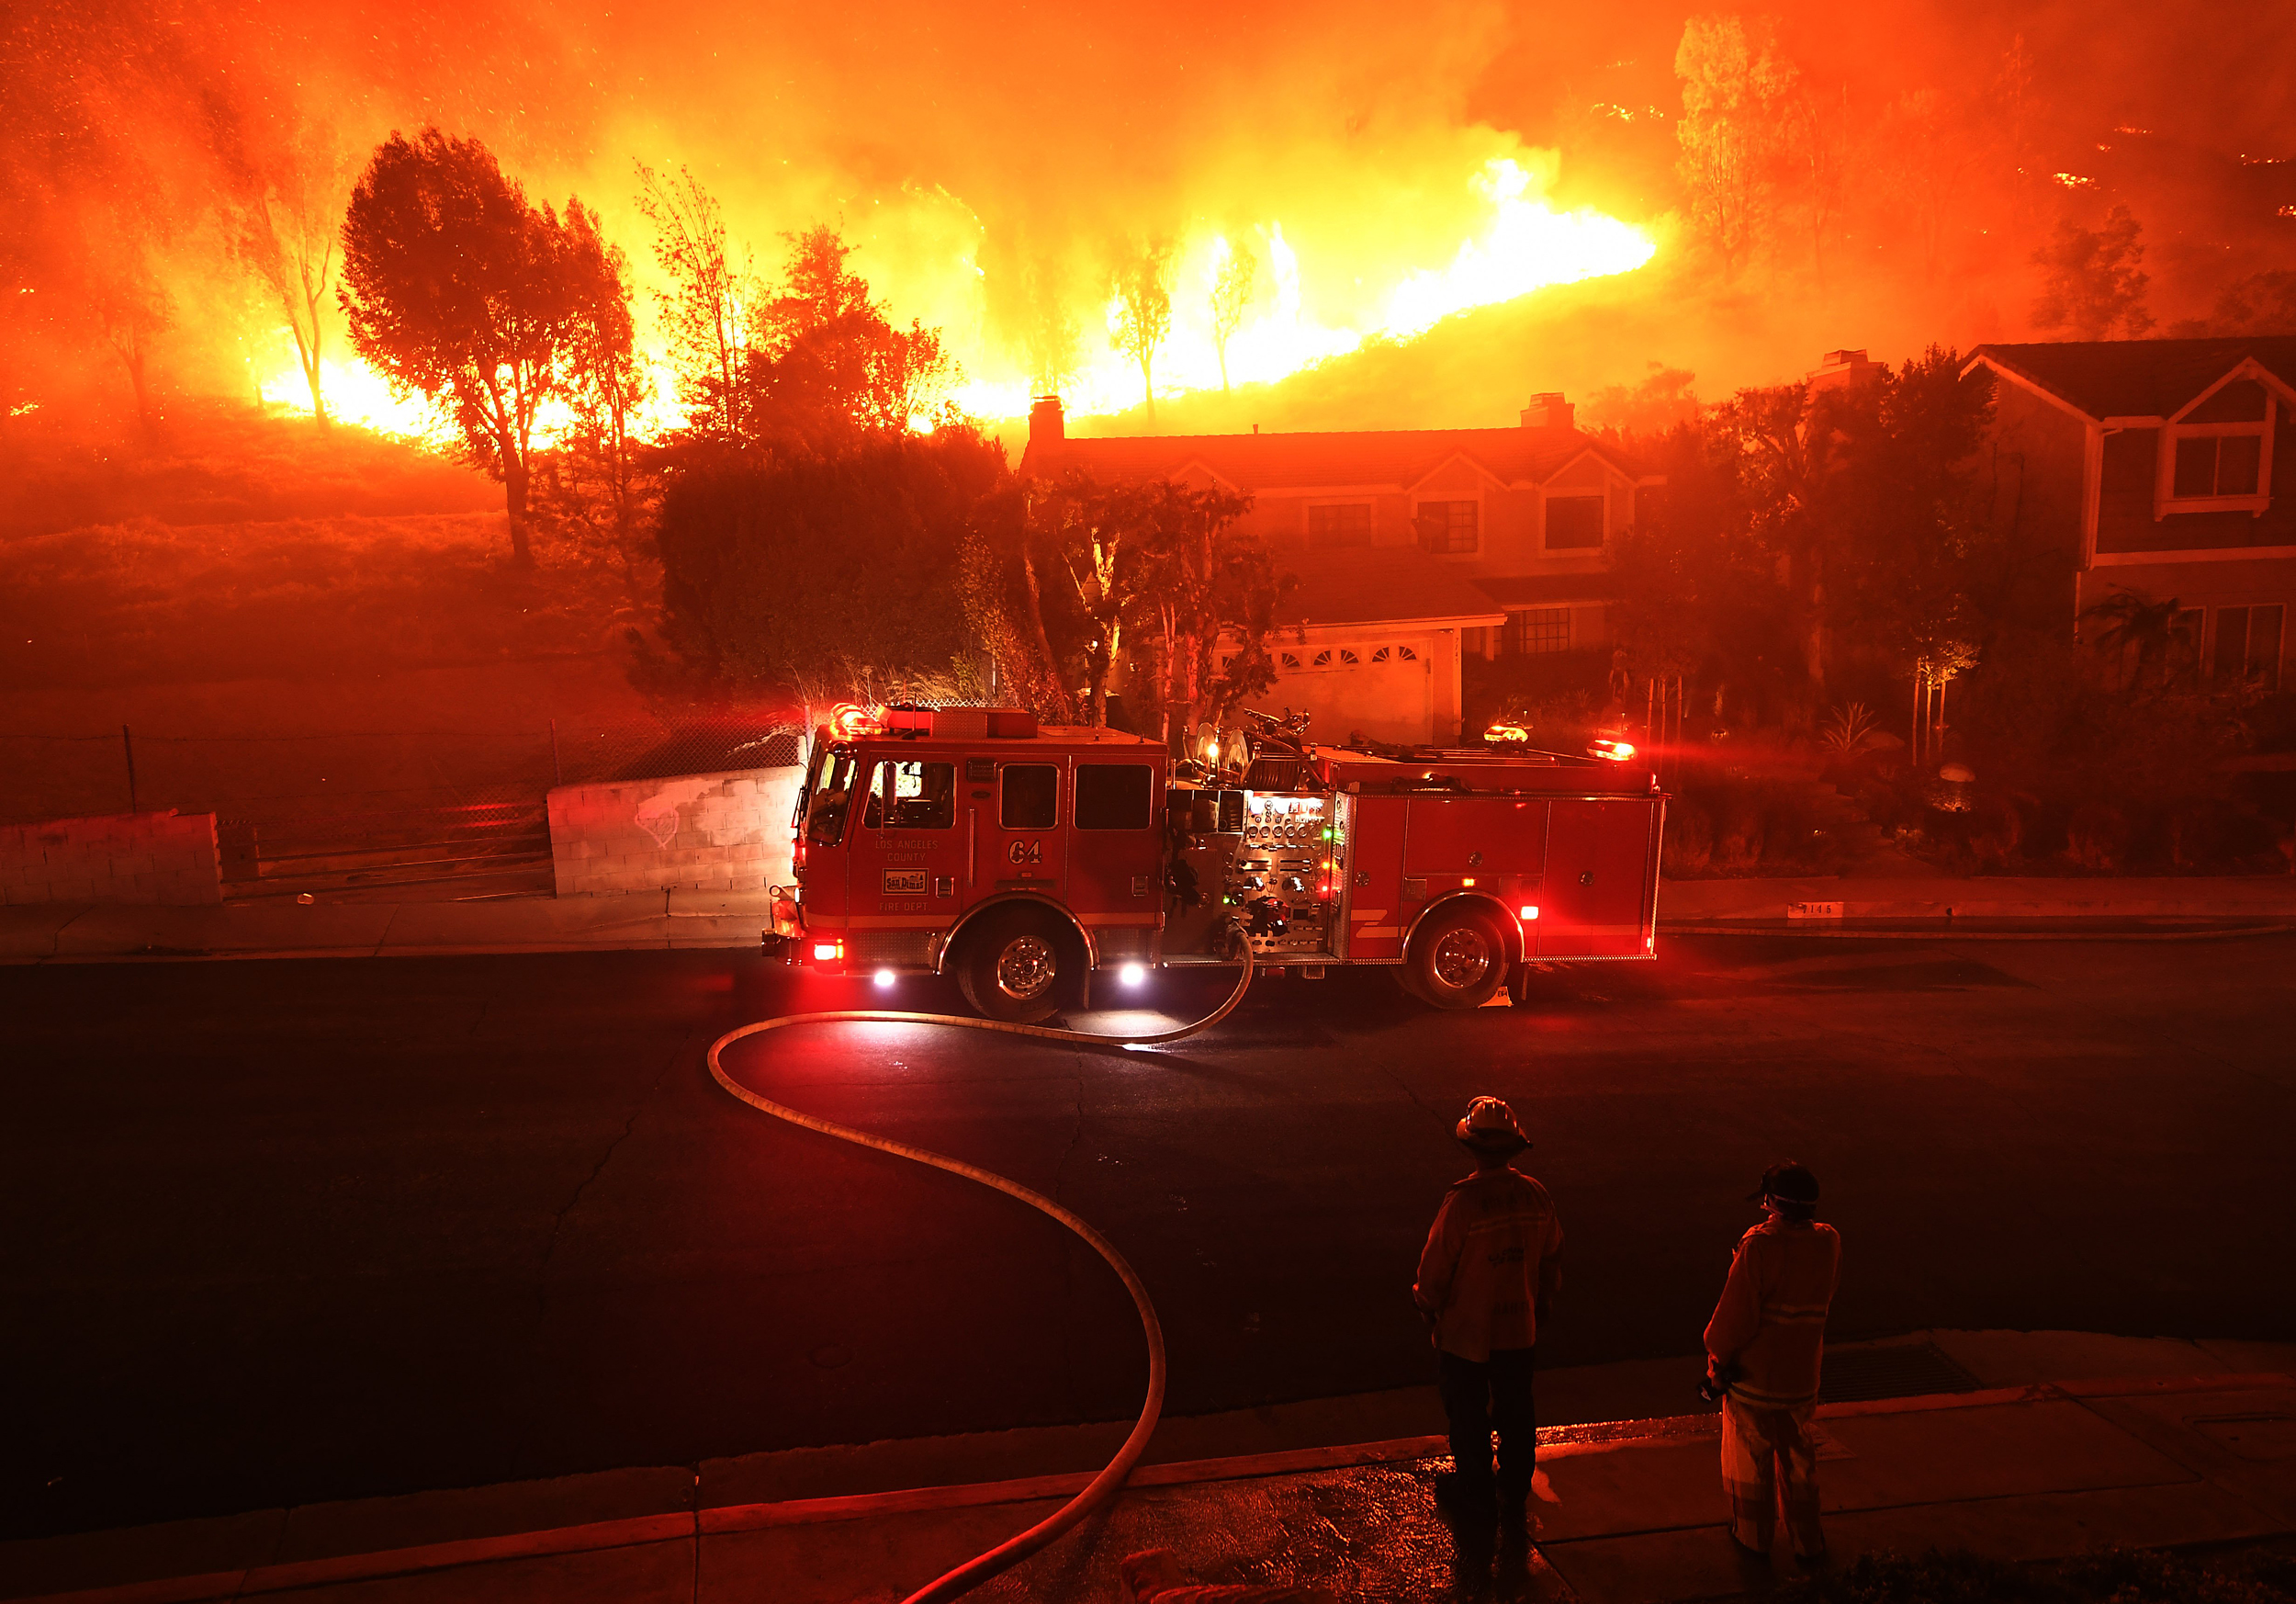 At-least-11-deaths-suspected-in-California-wildfires,-as-winds-set-to-pick-back-up